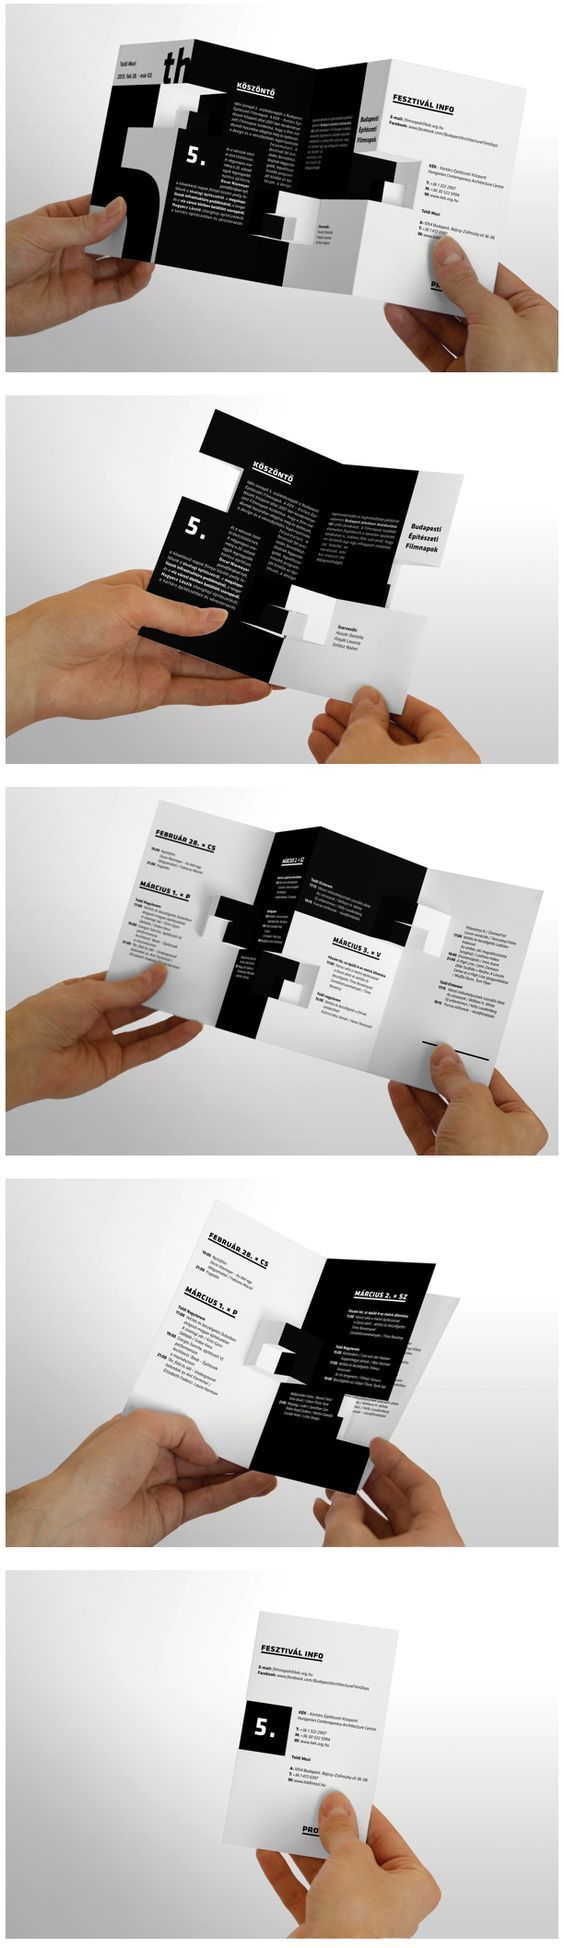 This brochure is a good example on type, alignment and paper structure. The use of type is prominent in this design, but the paper-cutout structure keeps the composition interesting interactive: other pop-out parts help make another part of the composition on another page. The alignment uses justified alignment for the inter-lapping text blocks to mimic the square cut-out shapes. There is strong use of emphasized headlines and numbers with large and bold text.